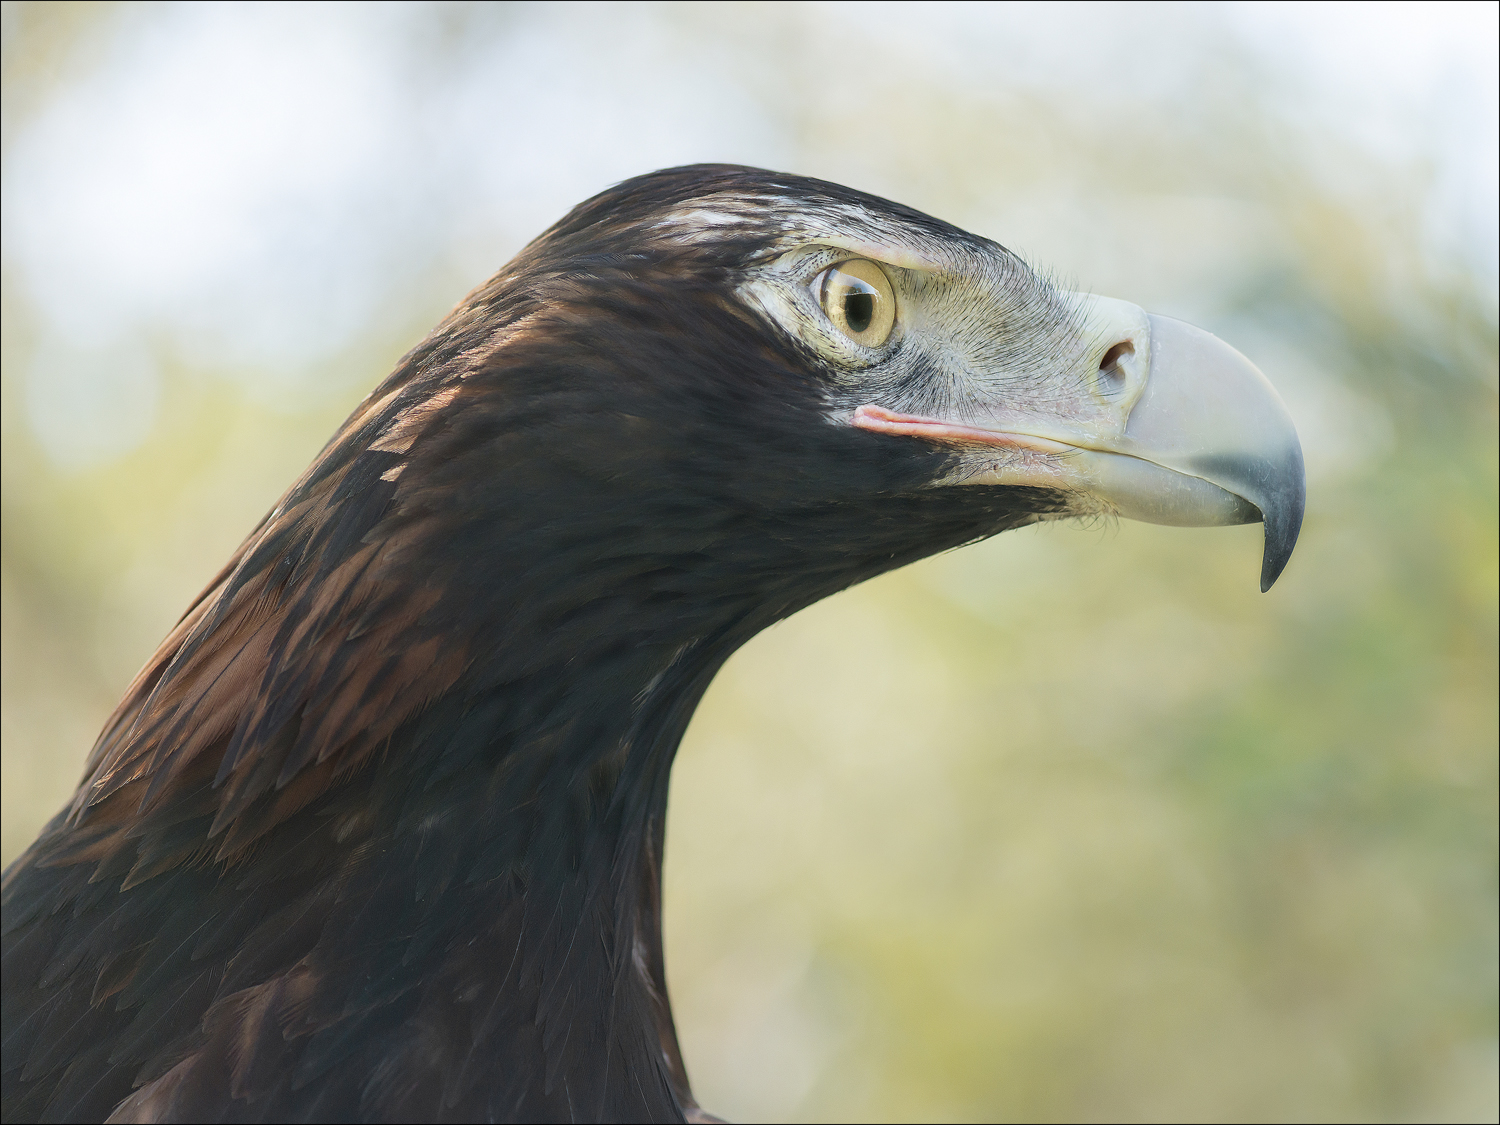 Tilka, Wedge-tailed Eagle